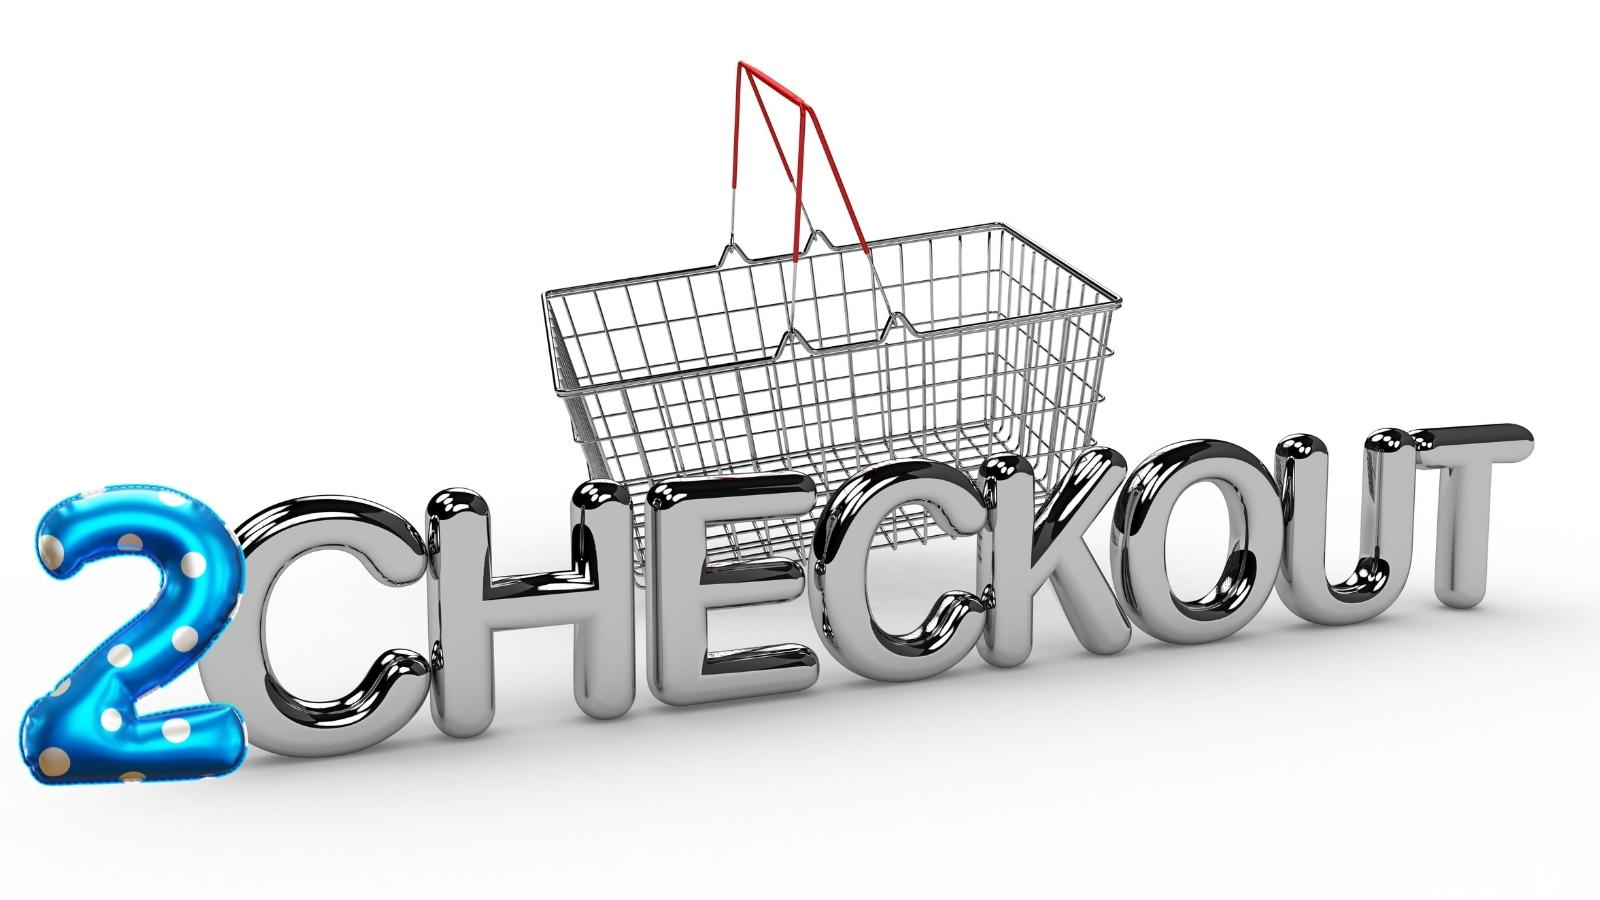 2checkout payment proceessor